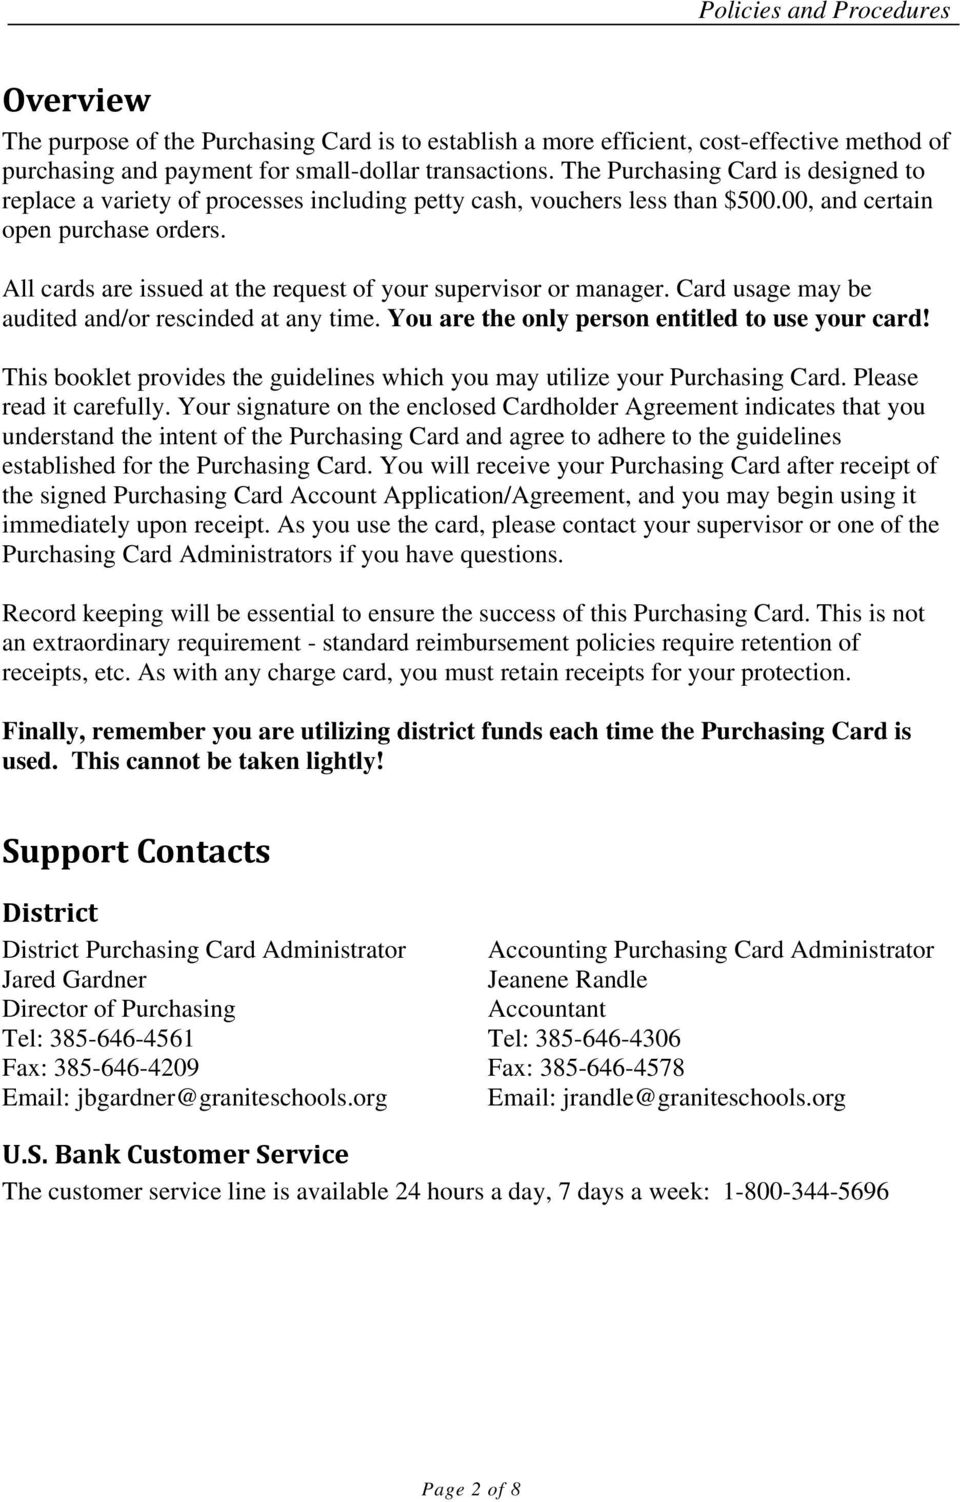 All cards are issued at the request of your supervisor or manager. Card usage may be audited and/or rescinded at any time. You are the only person entitled to use your card!